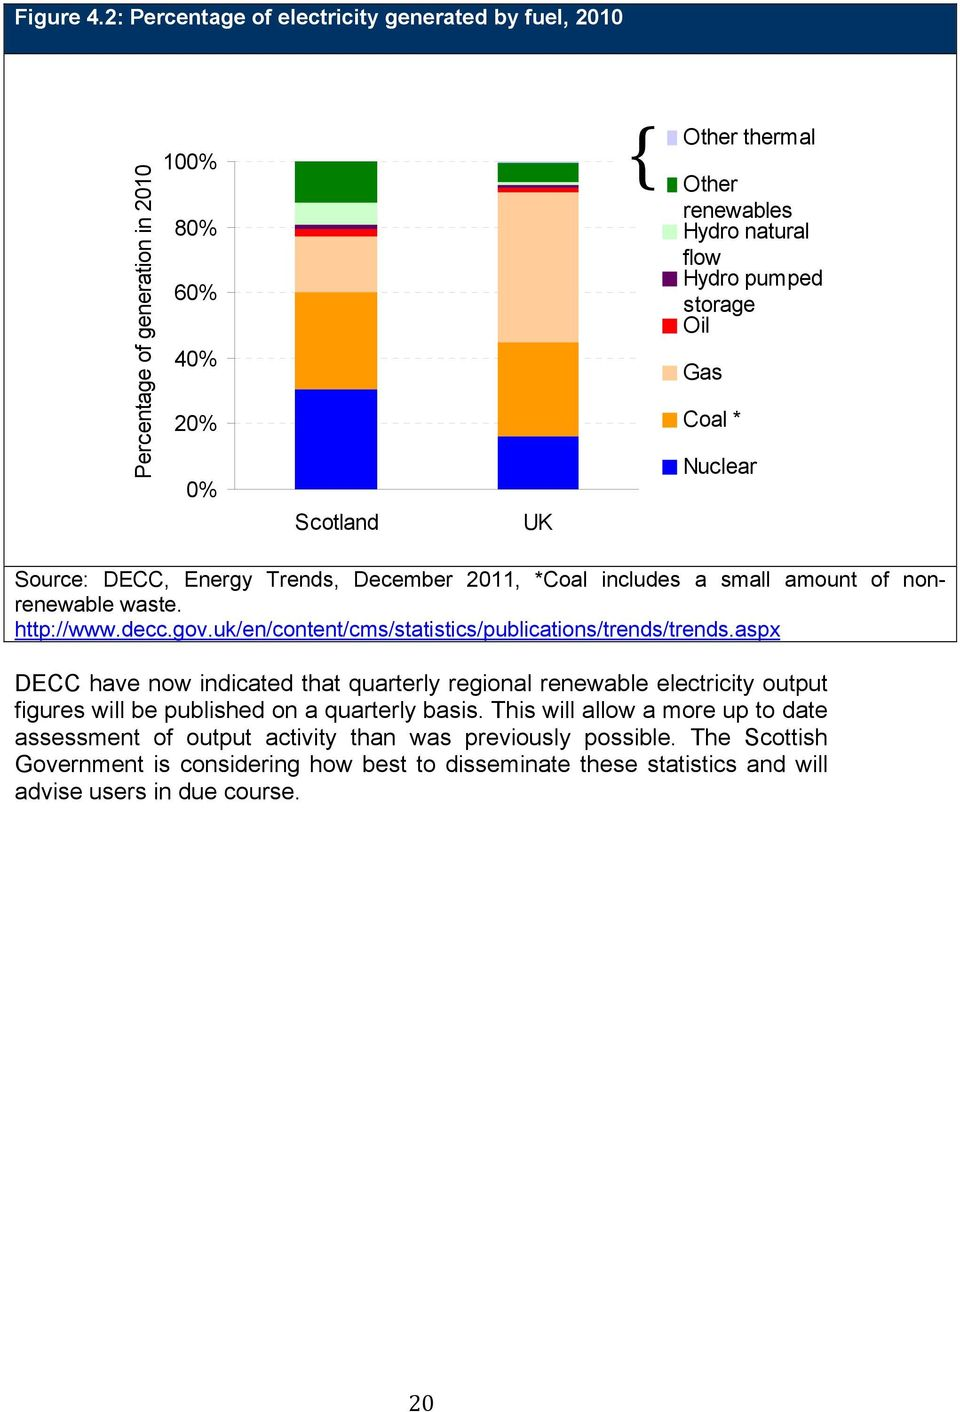 pumped storage Oil Gas Coal * Nuclear Source: DECC, Energy Trends, December 2011, *Coal includes a small amount of nonrenewable waste. http://www.decc.gov.